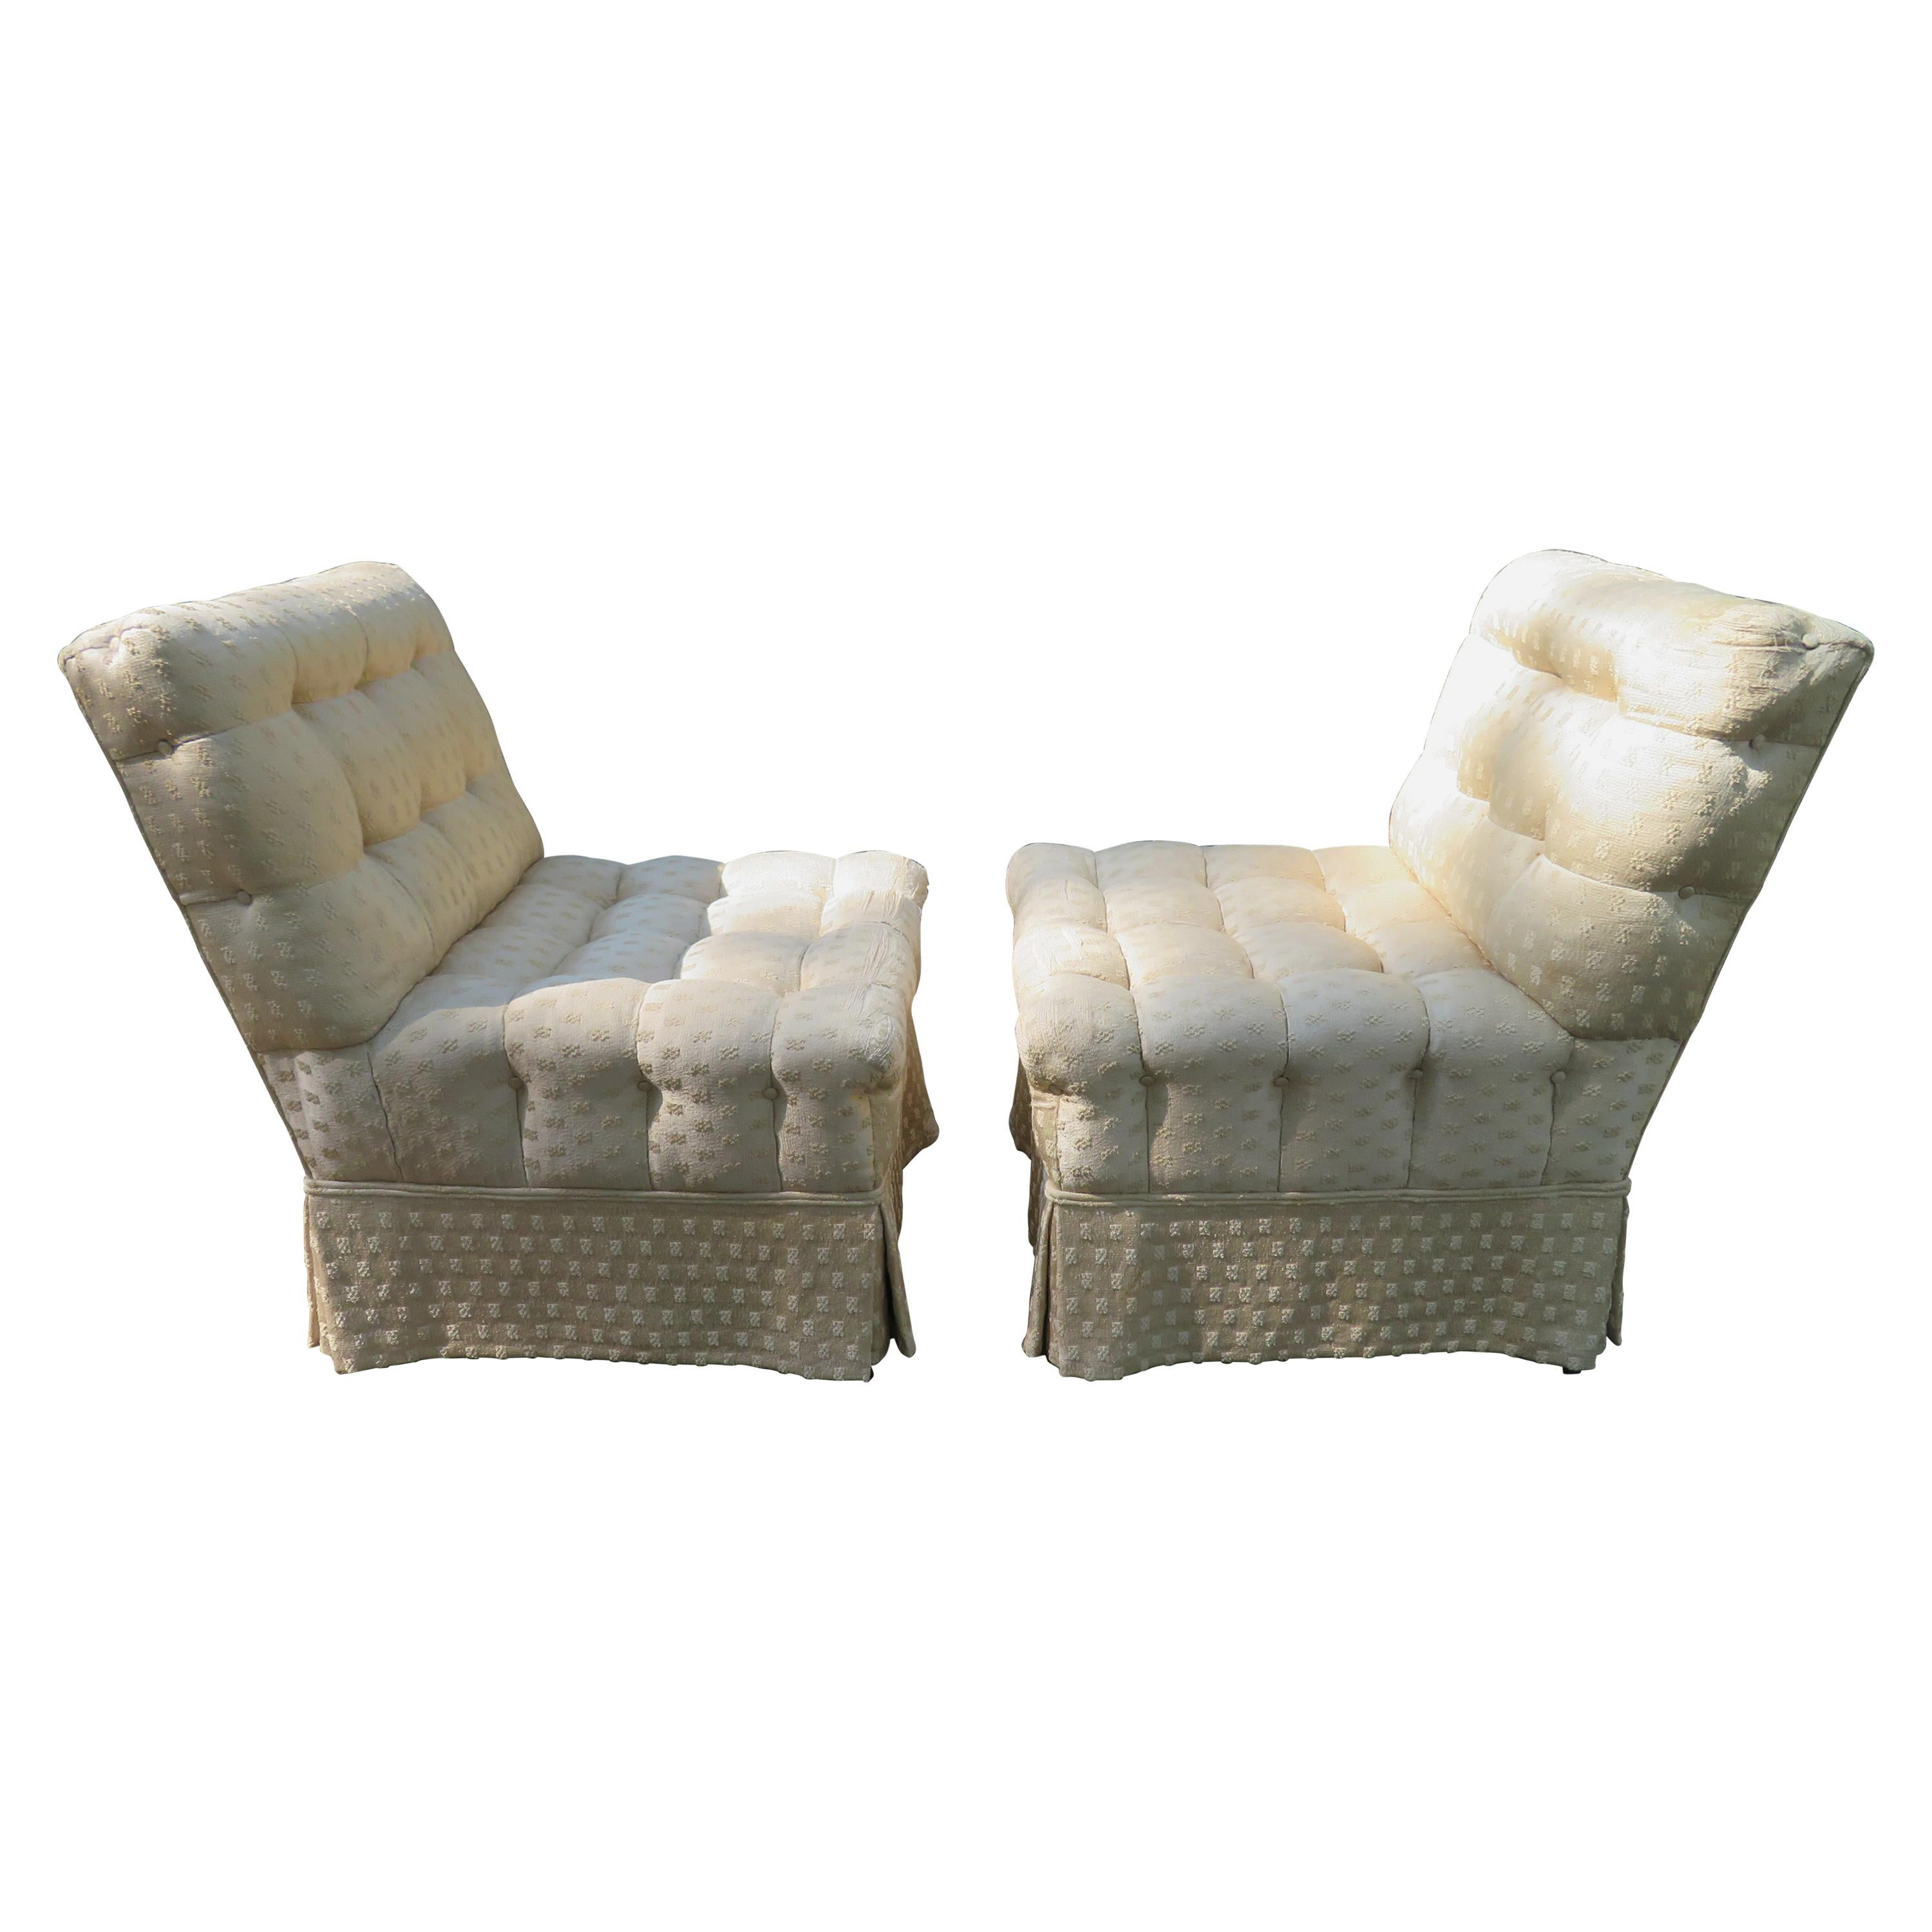 Fabulous Pair Billy Haines Style Biscuit Tufted Slipper Chairs Hollywood Regency